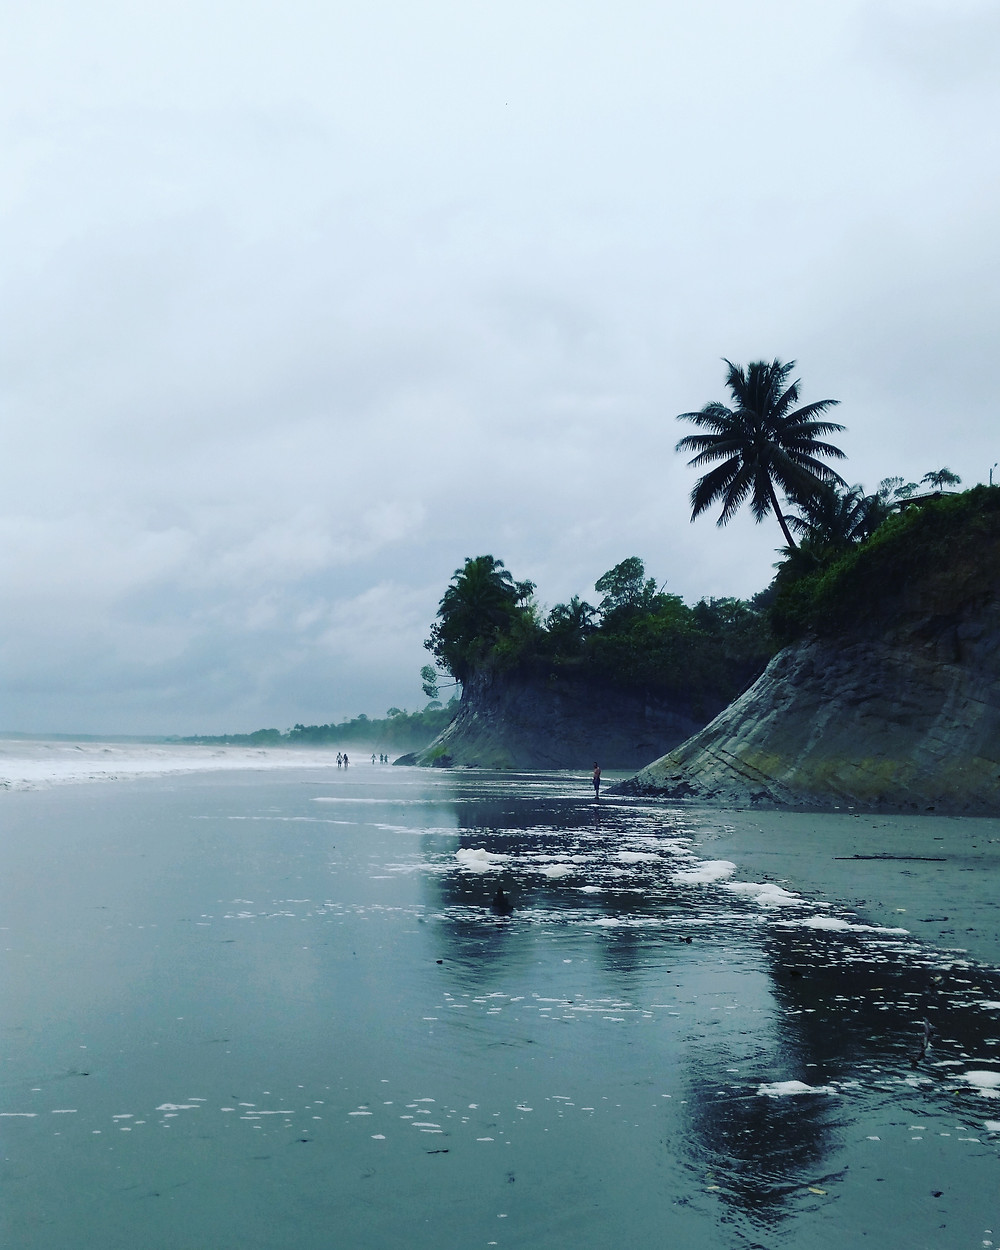 One of the beautiful beaches of Ladrilleros, Colombia